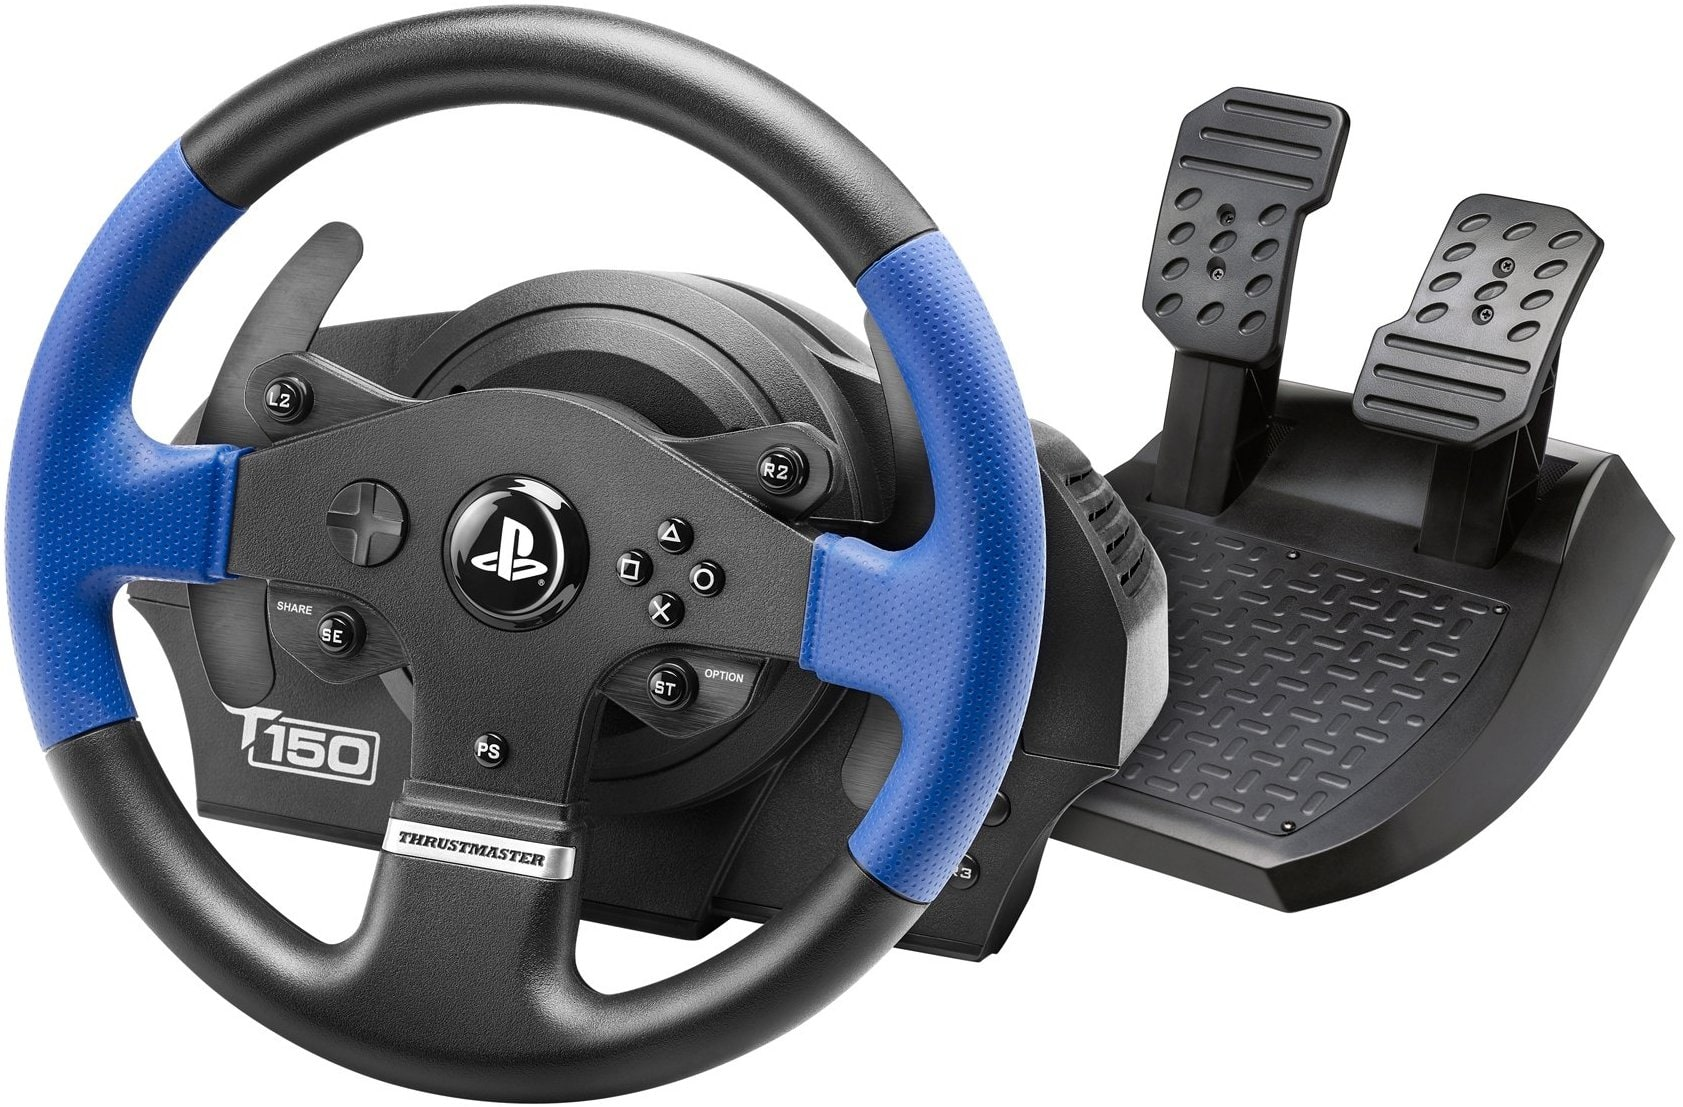 Thrustmaster T150 Force Feedback Racing Wheel for $139.99 + Free Shipping